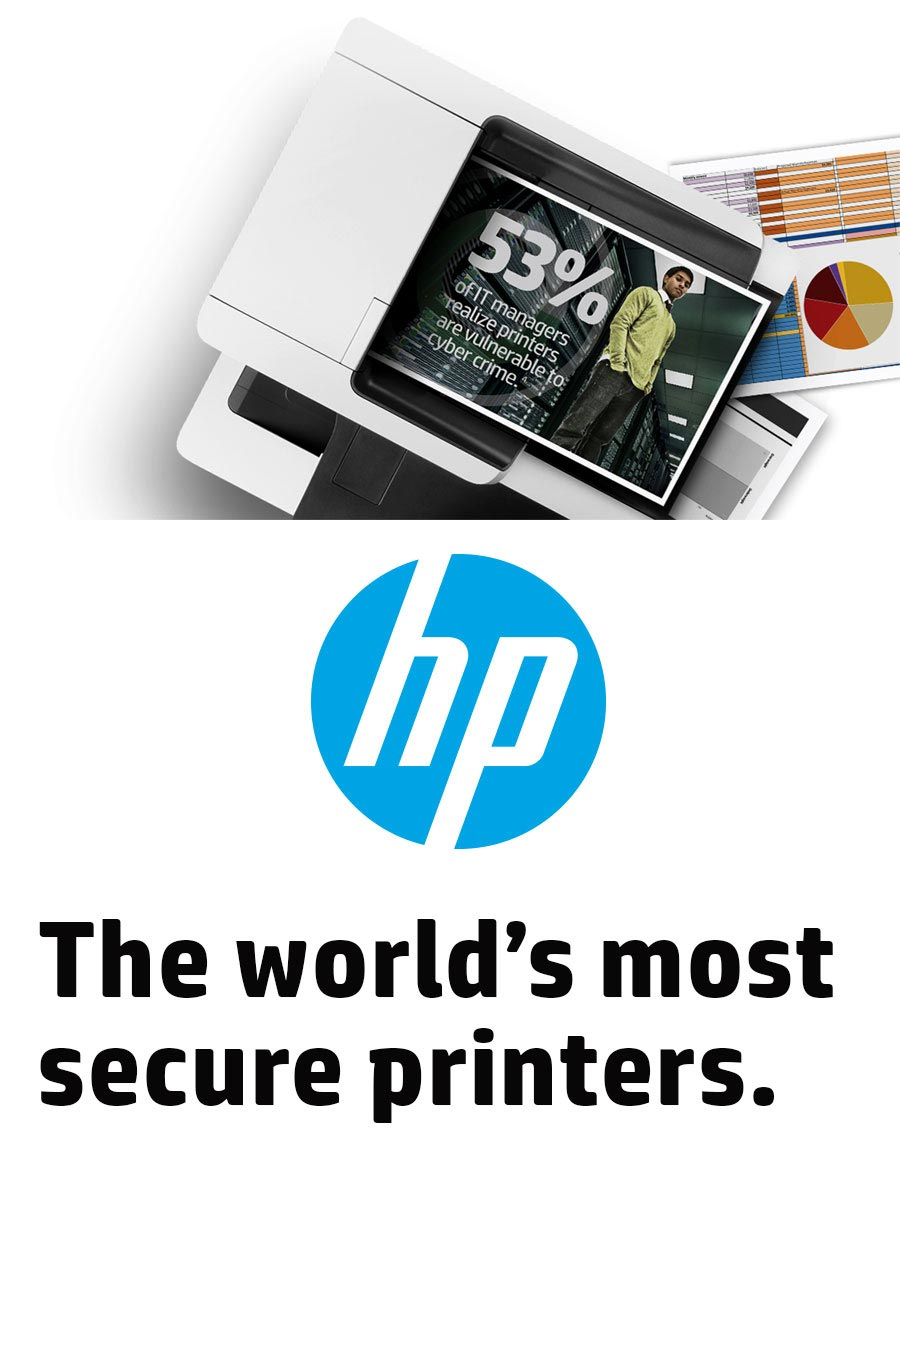 HP The World's Most Secure Printers